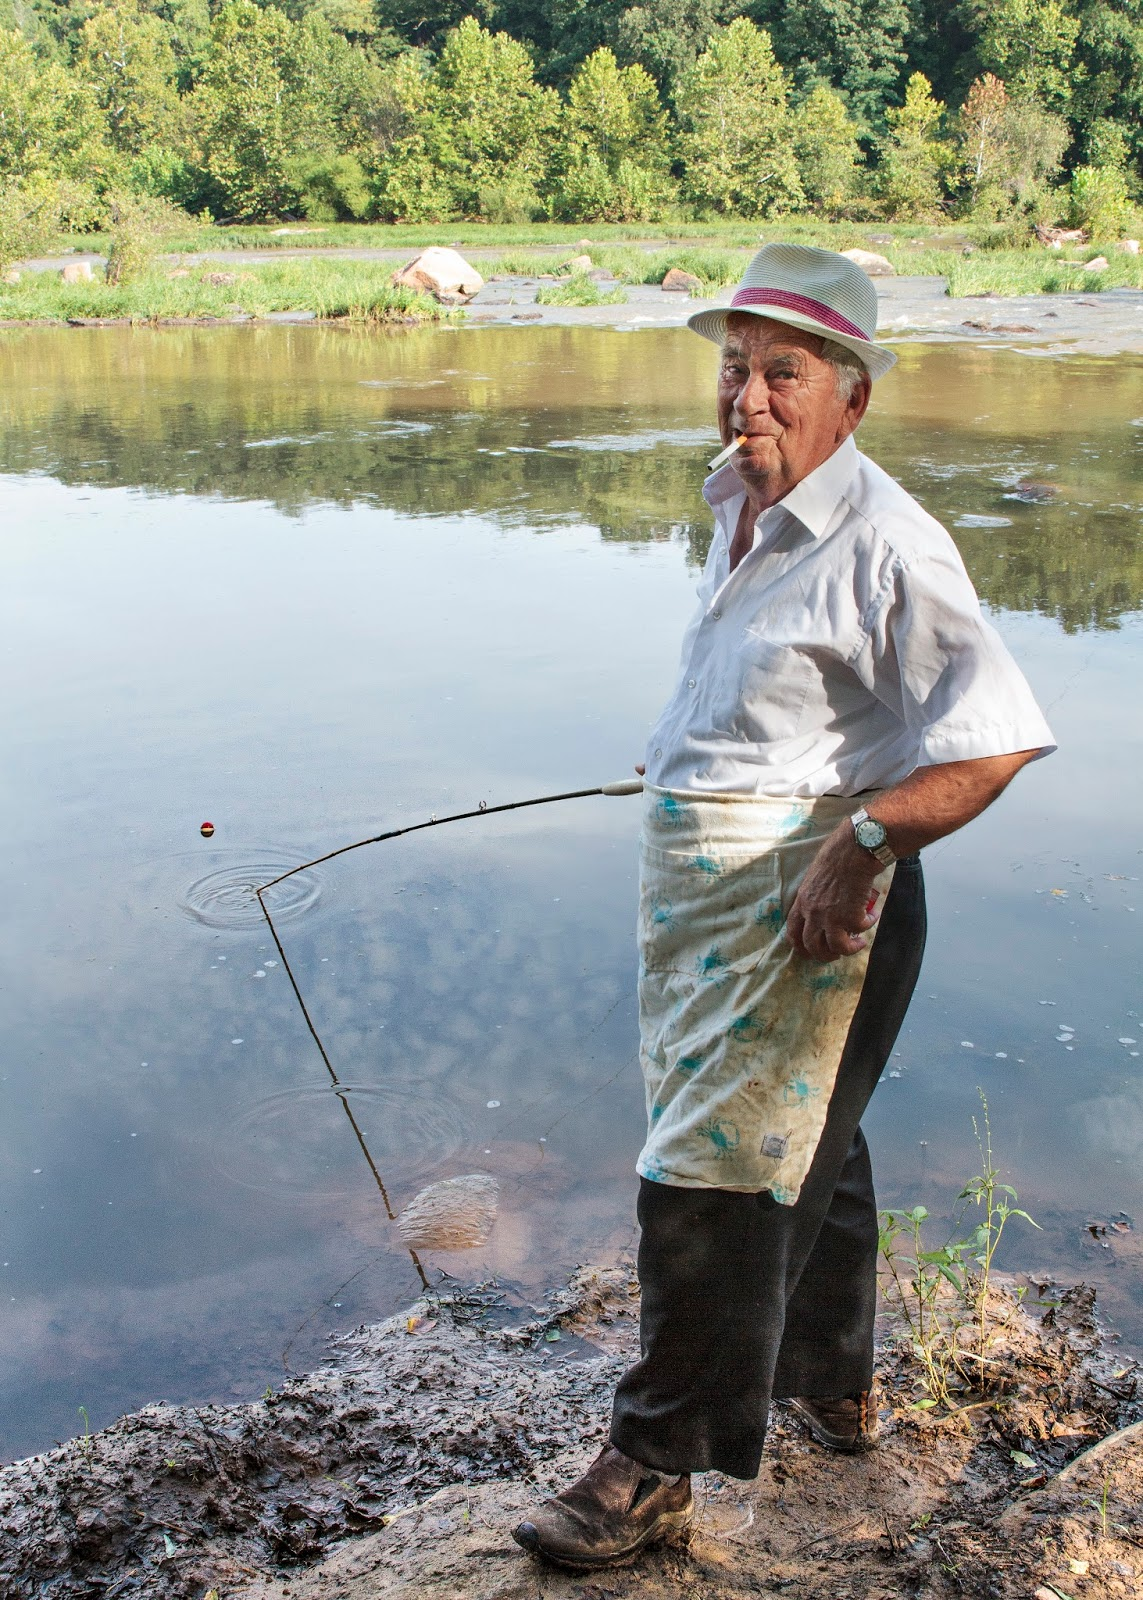 fishing essay Fishing is one of the most exciting items in my hobbies list in this world that i had always wished as a young boy to have done in the company of my father.